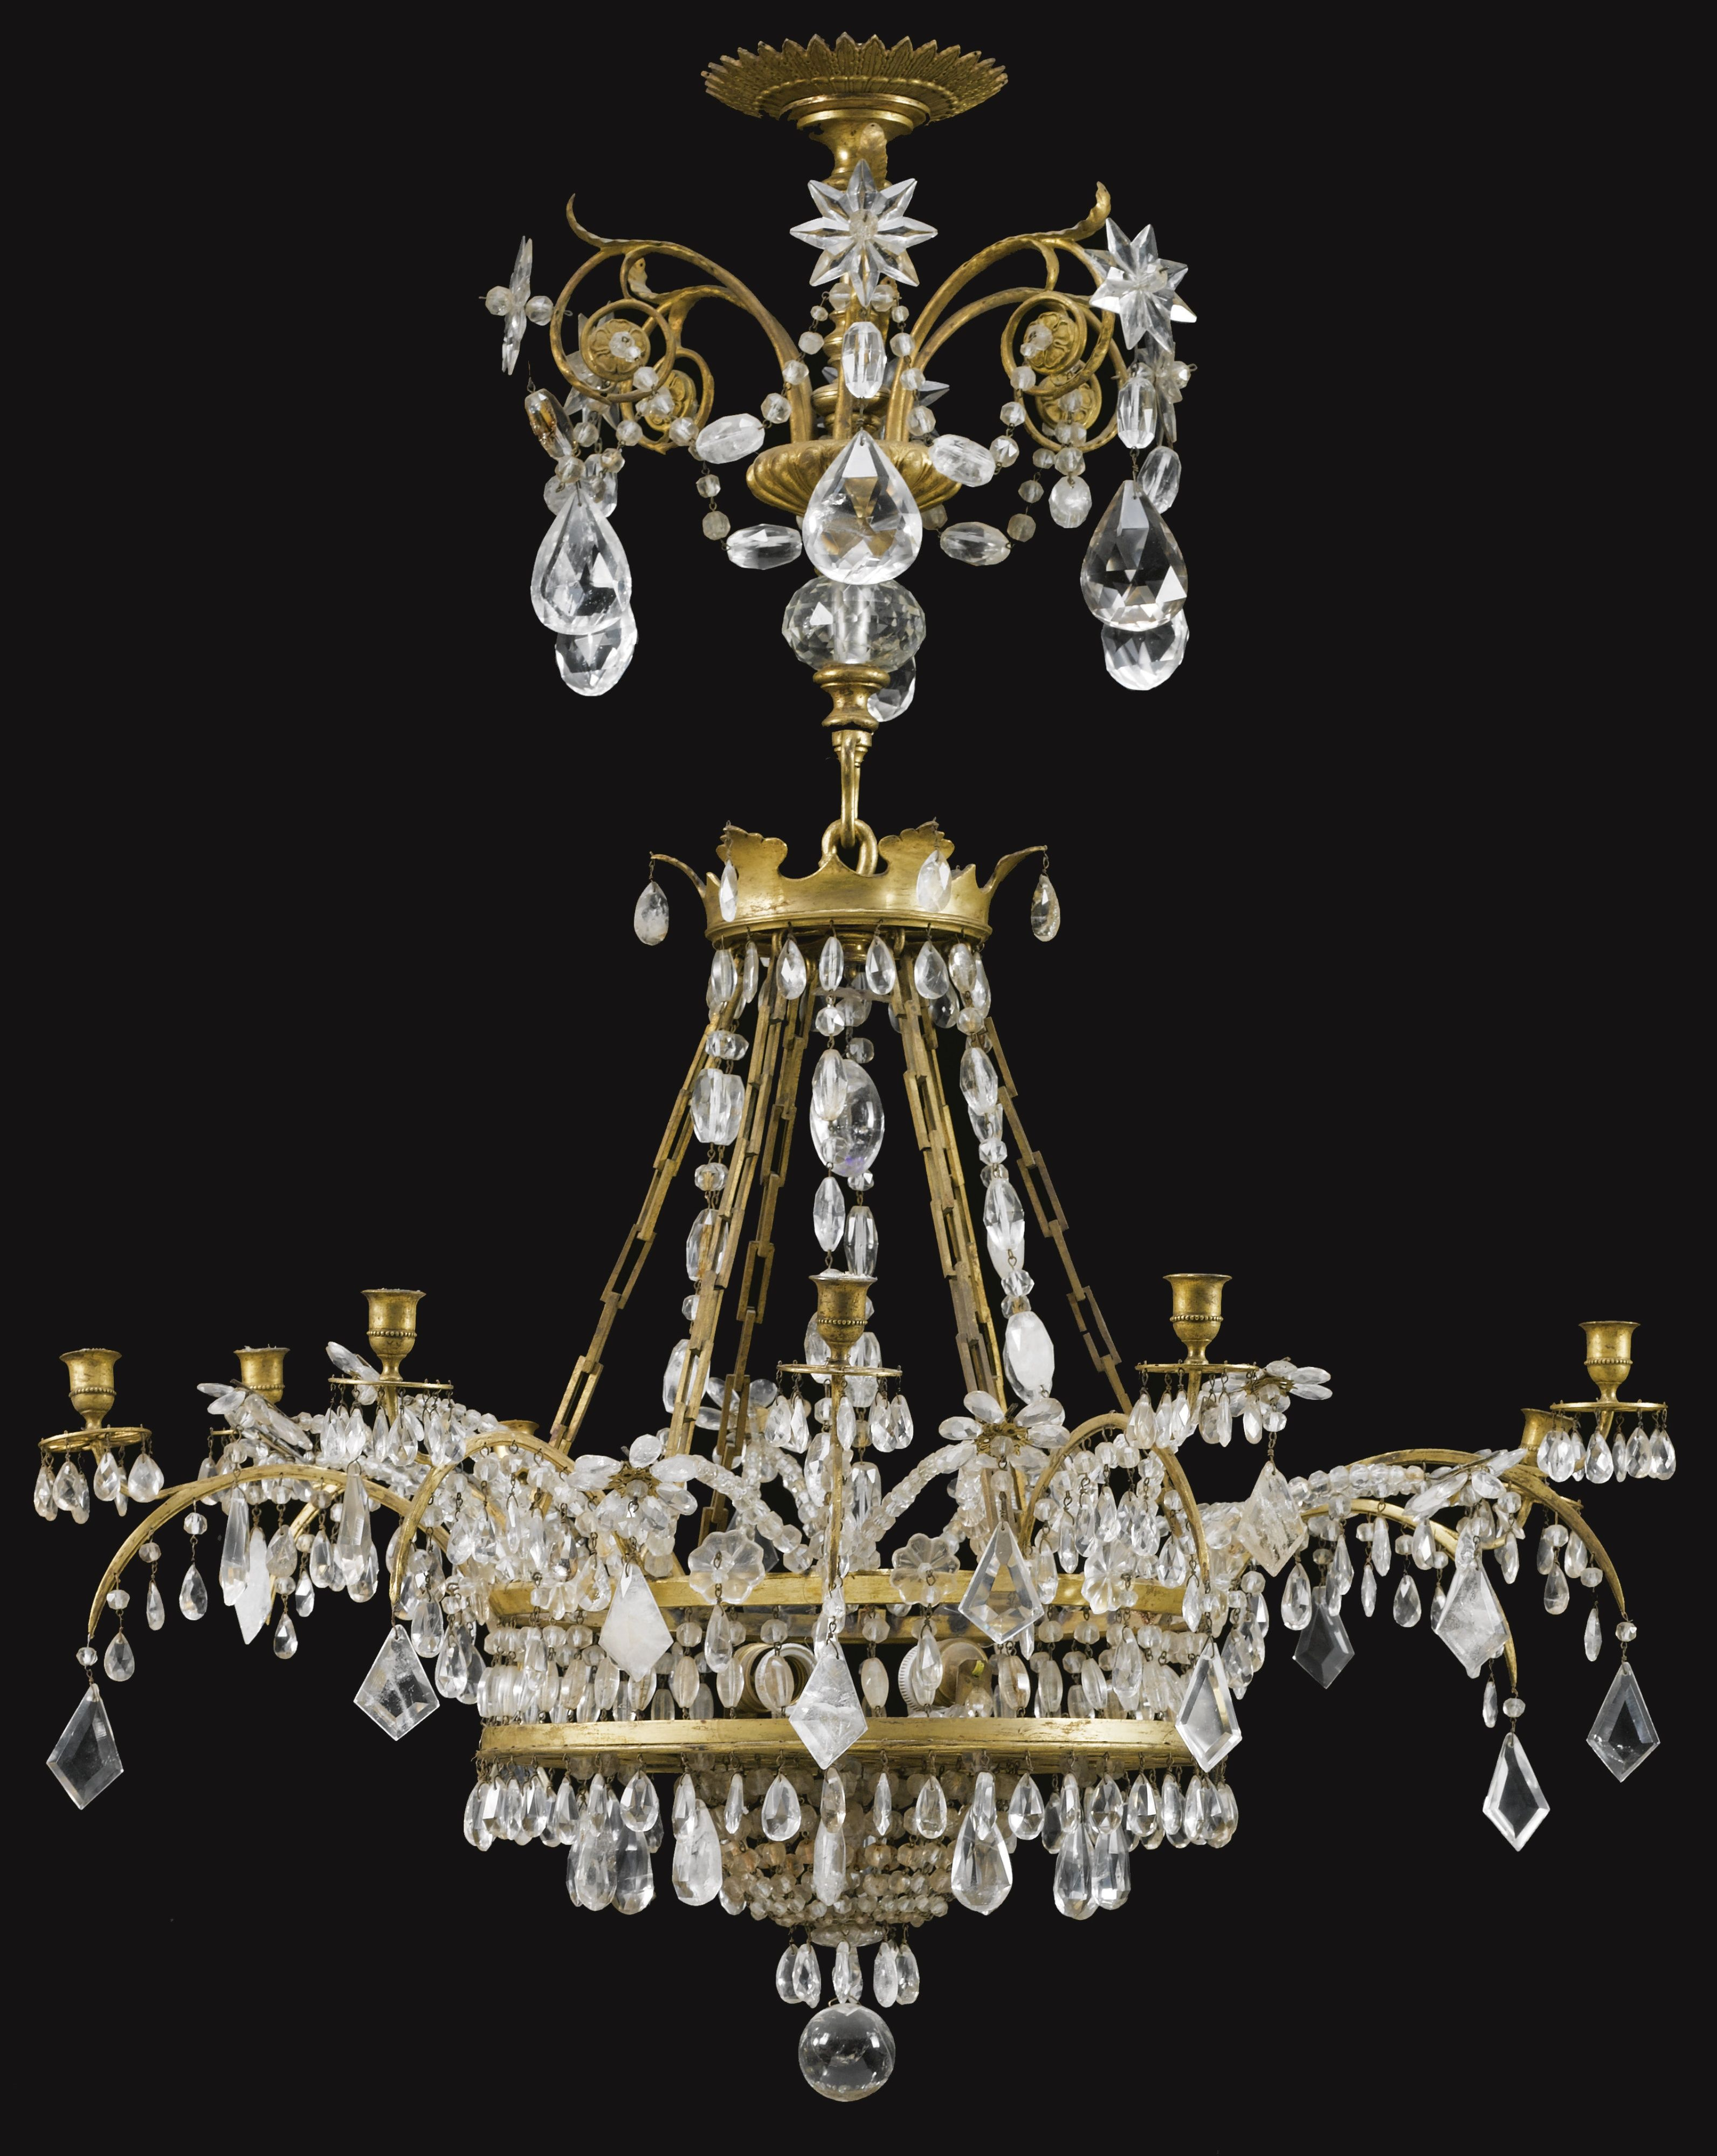 chandelier finish wide crystal light glass lighting item clear magnifying in gold etruscan image cfm renaissance rock and shown inch schonbek